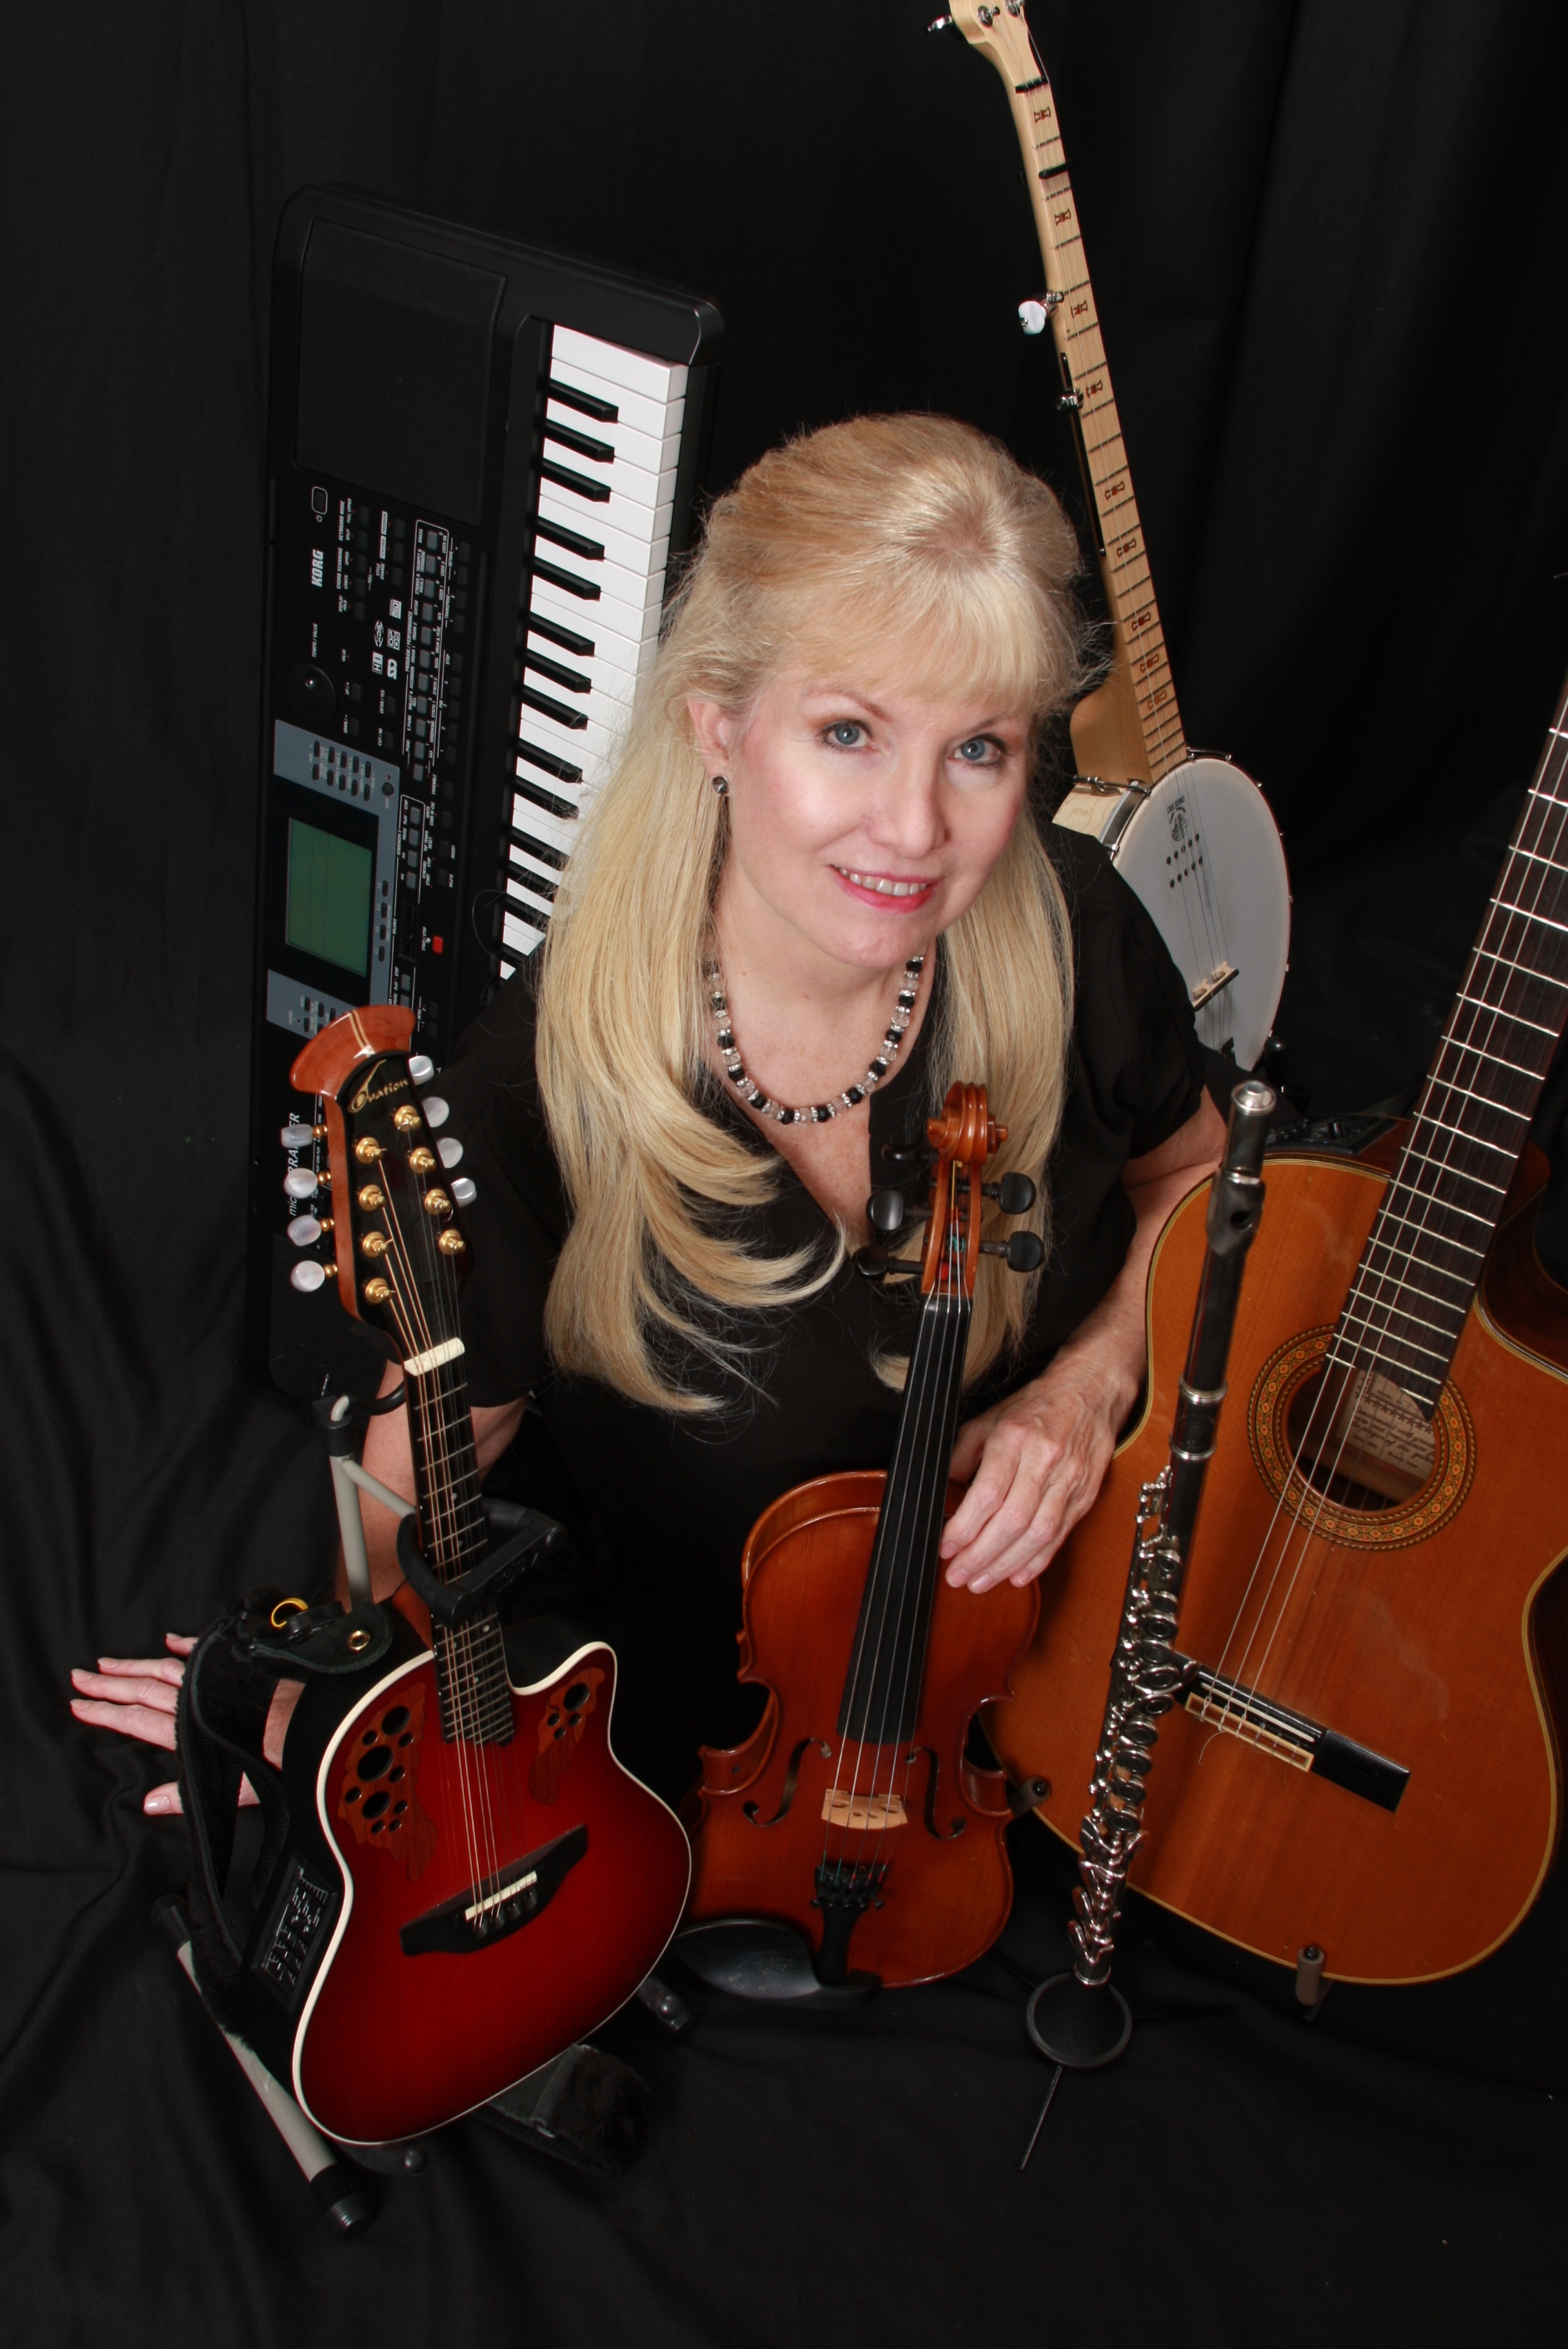 New in Best of Doral™ Music introduces Kelley Kennedy.